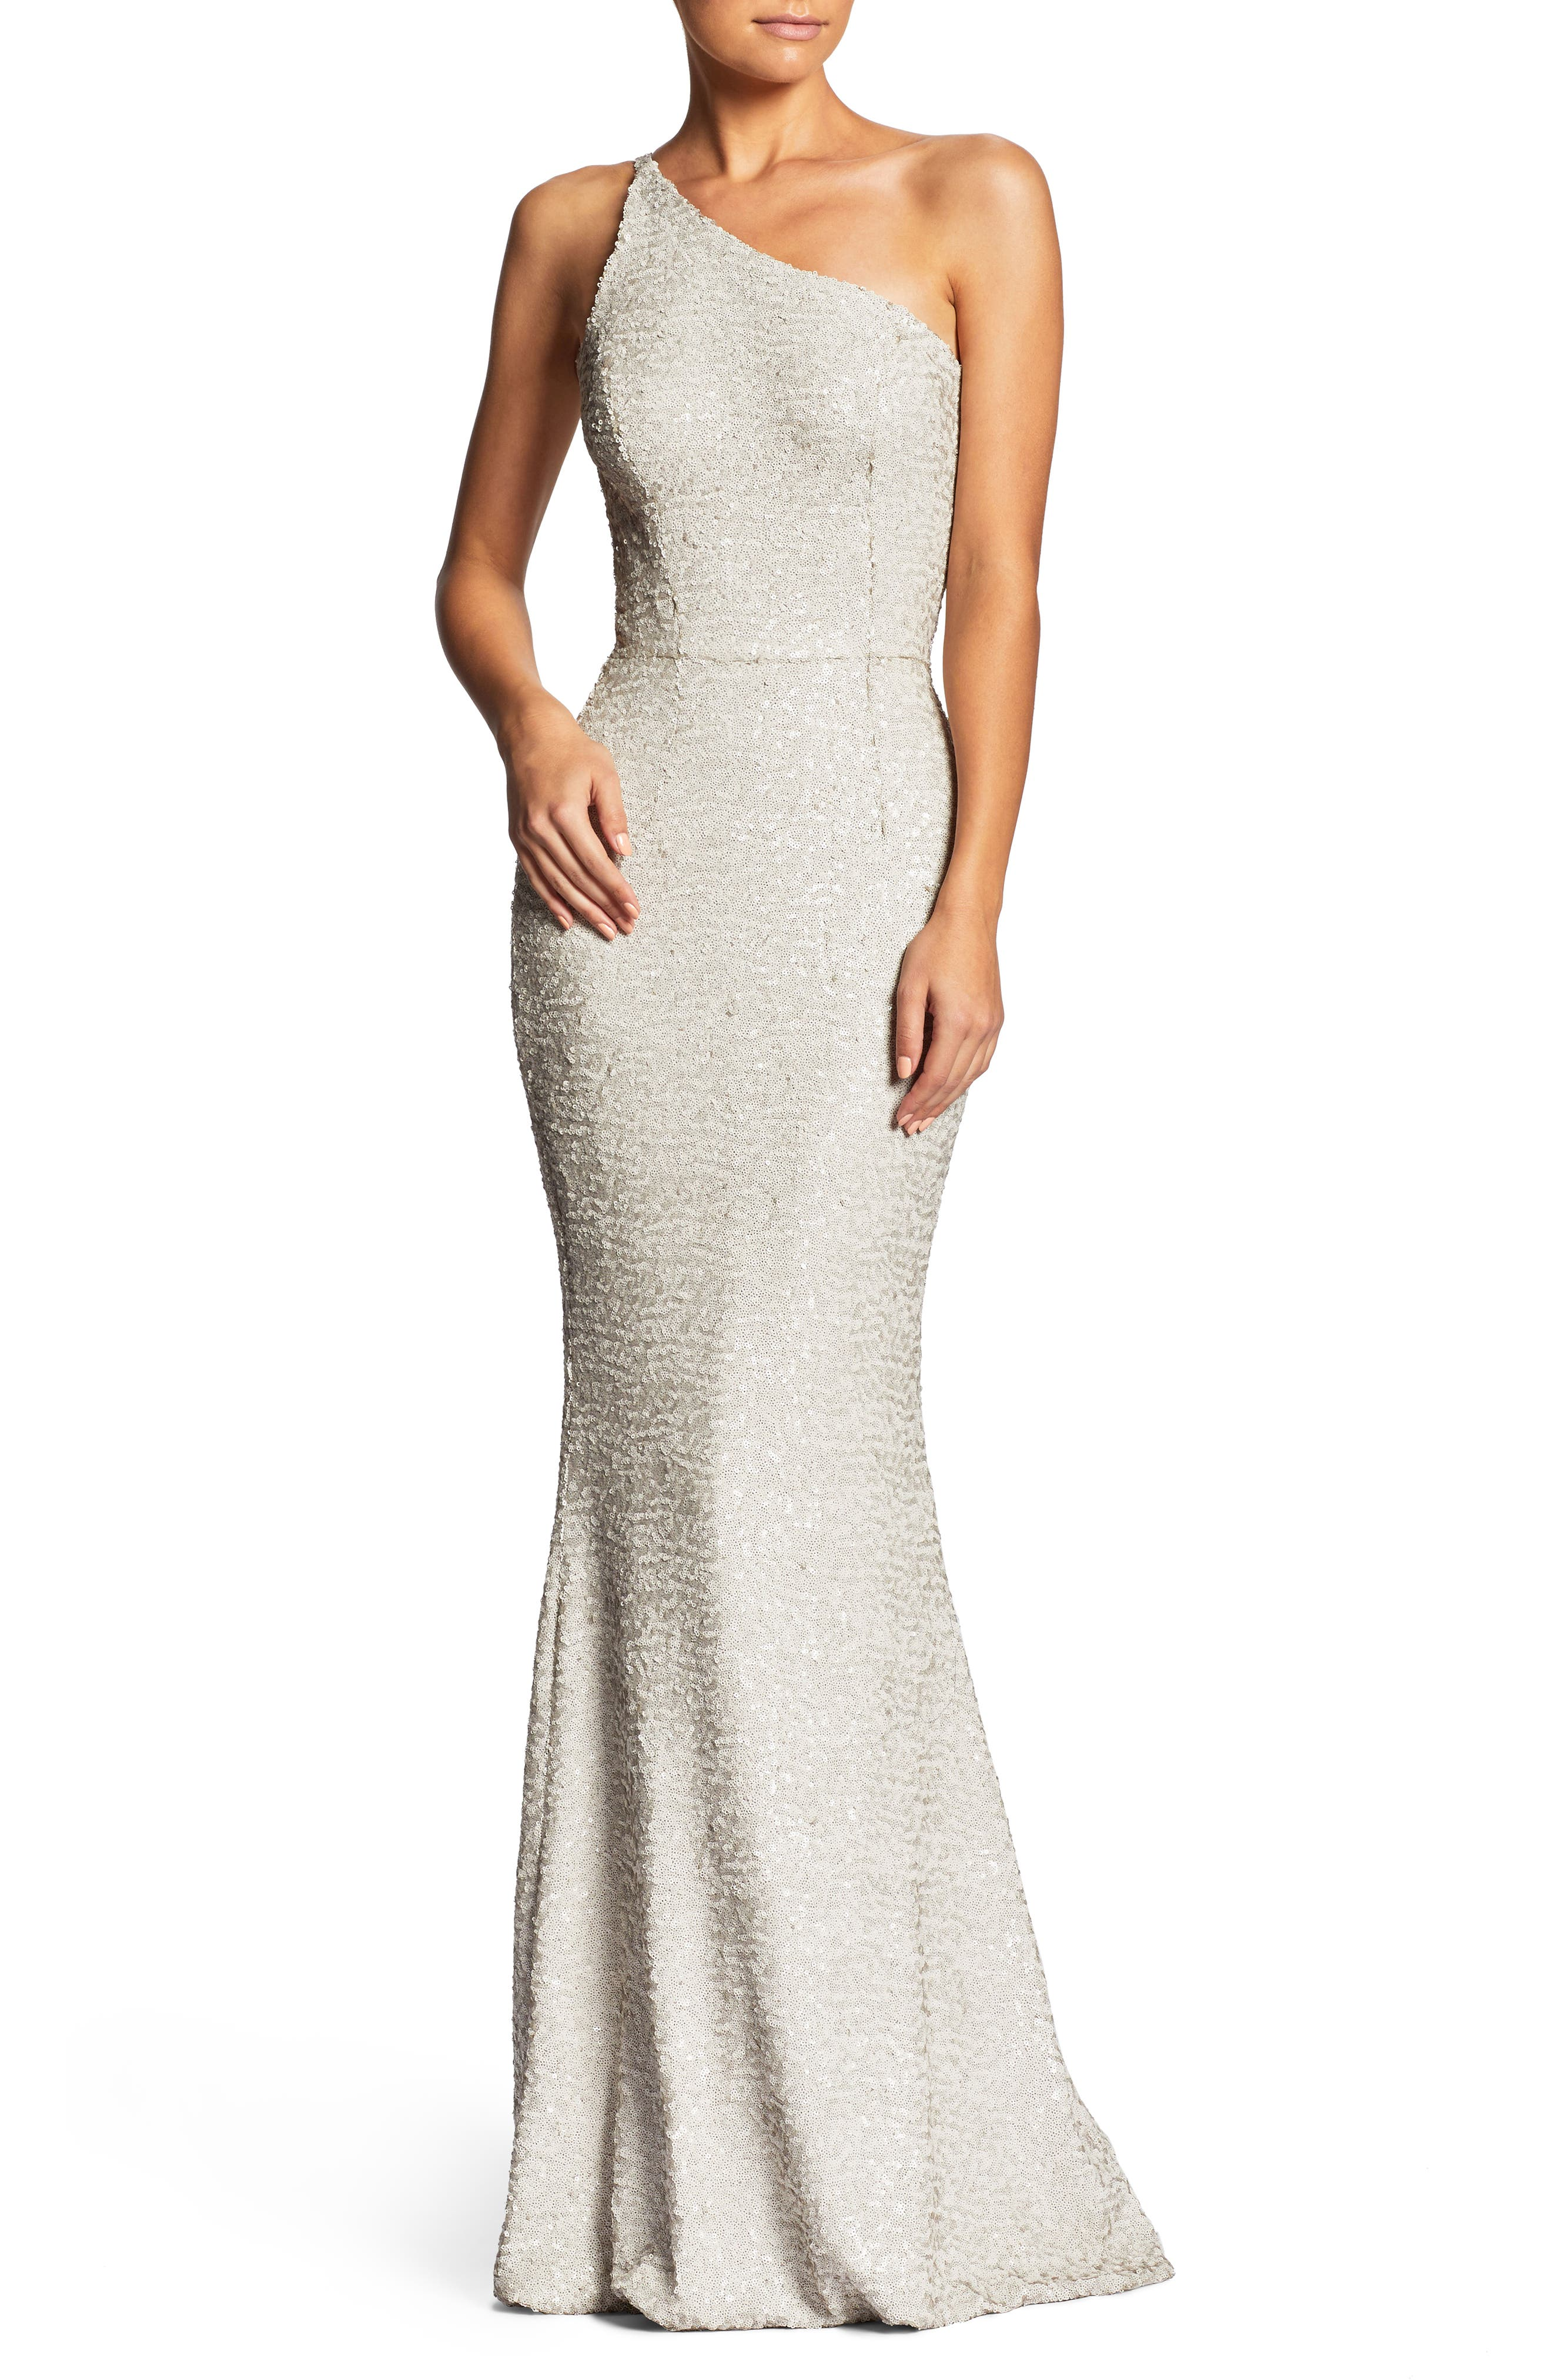 DRESS THE POPULATION Bella One-Shoulder Mermaid Gown, Main, color, 020